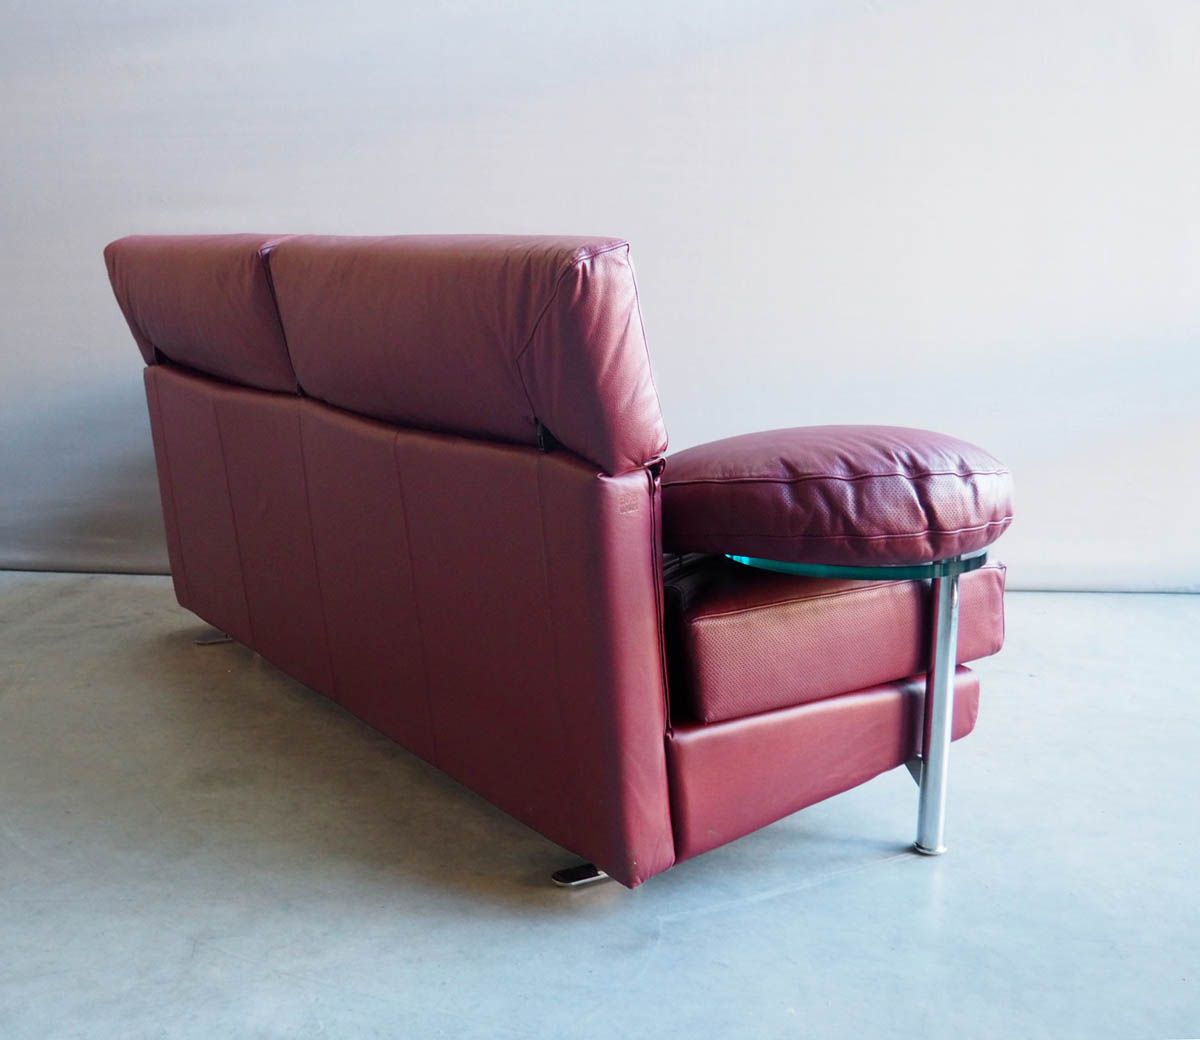 Vintage red leather arca sofa by paolo piva for b b italia for sale at pamono B b italia sofa for sale